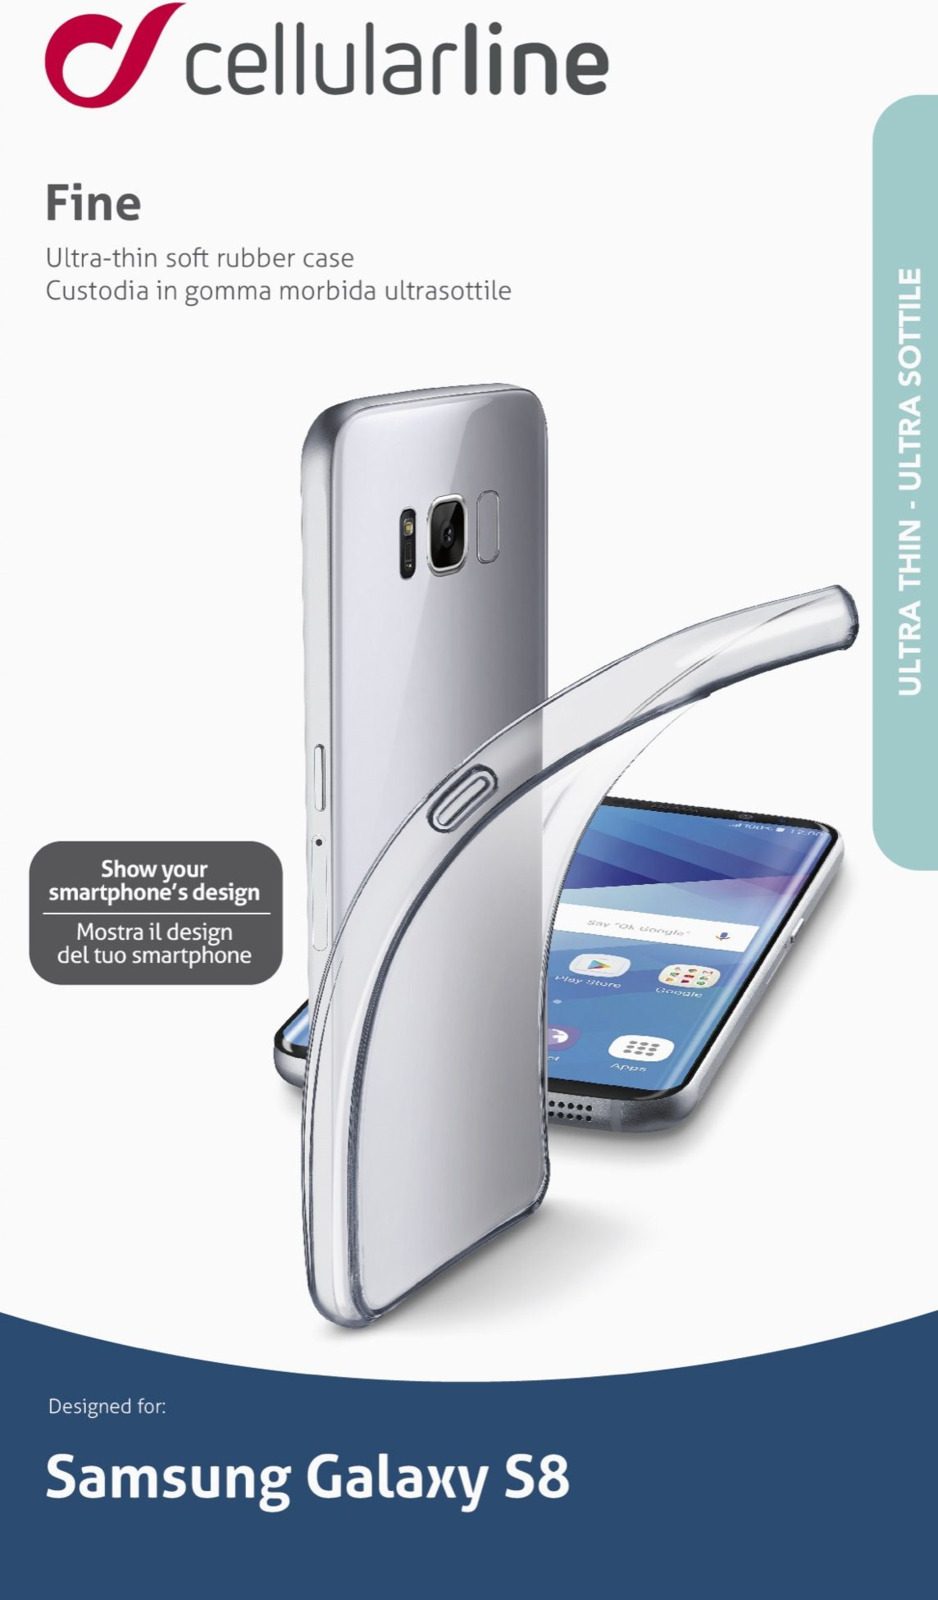 Чехол Cellularline для Samsung Galaxy S8, FINEGALS8T, прозрачный стилус other apple ipad samsung galaxy s3 i9300 21 eg0628